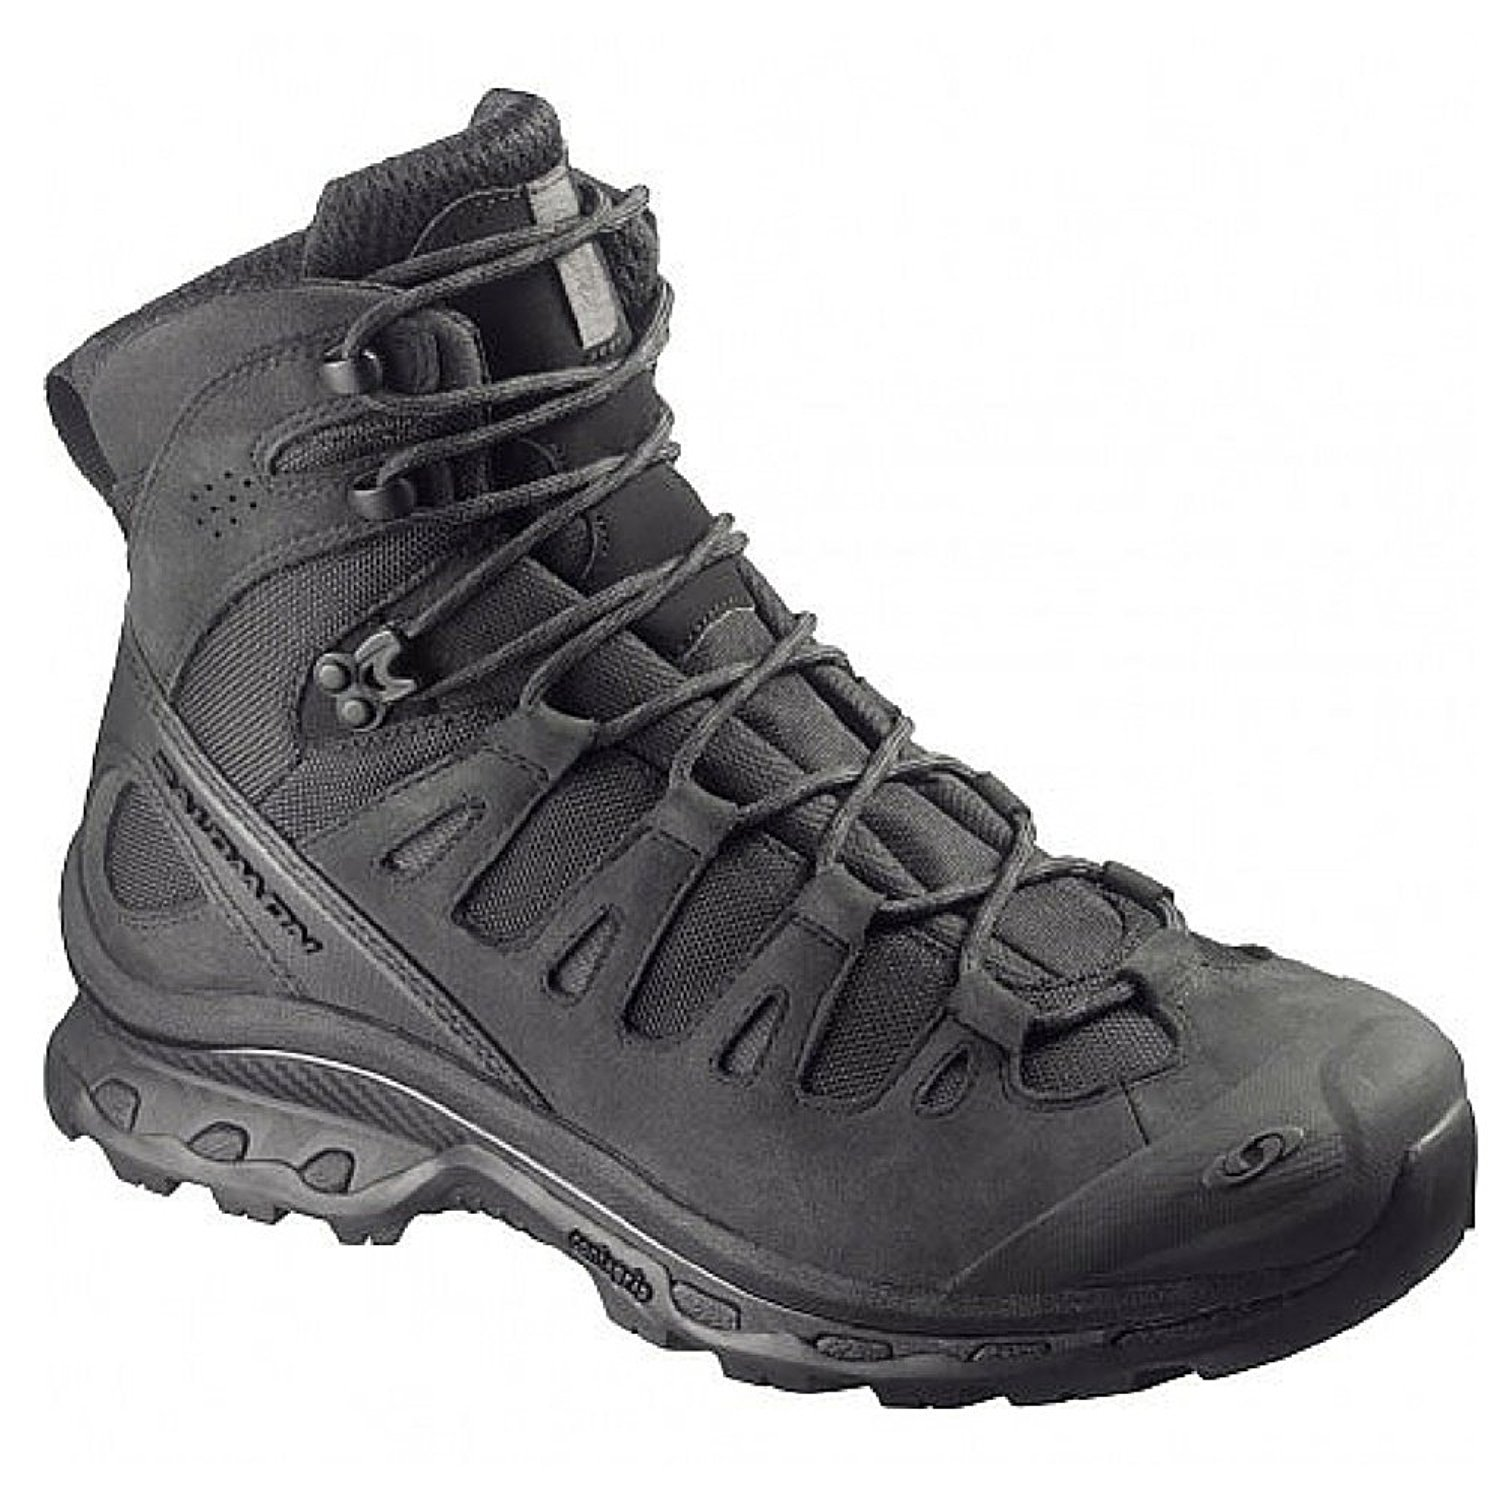 Salomon Quest 4D Forces B00TEEUS5K 11.5 M US|Black/Black